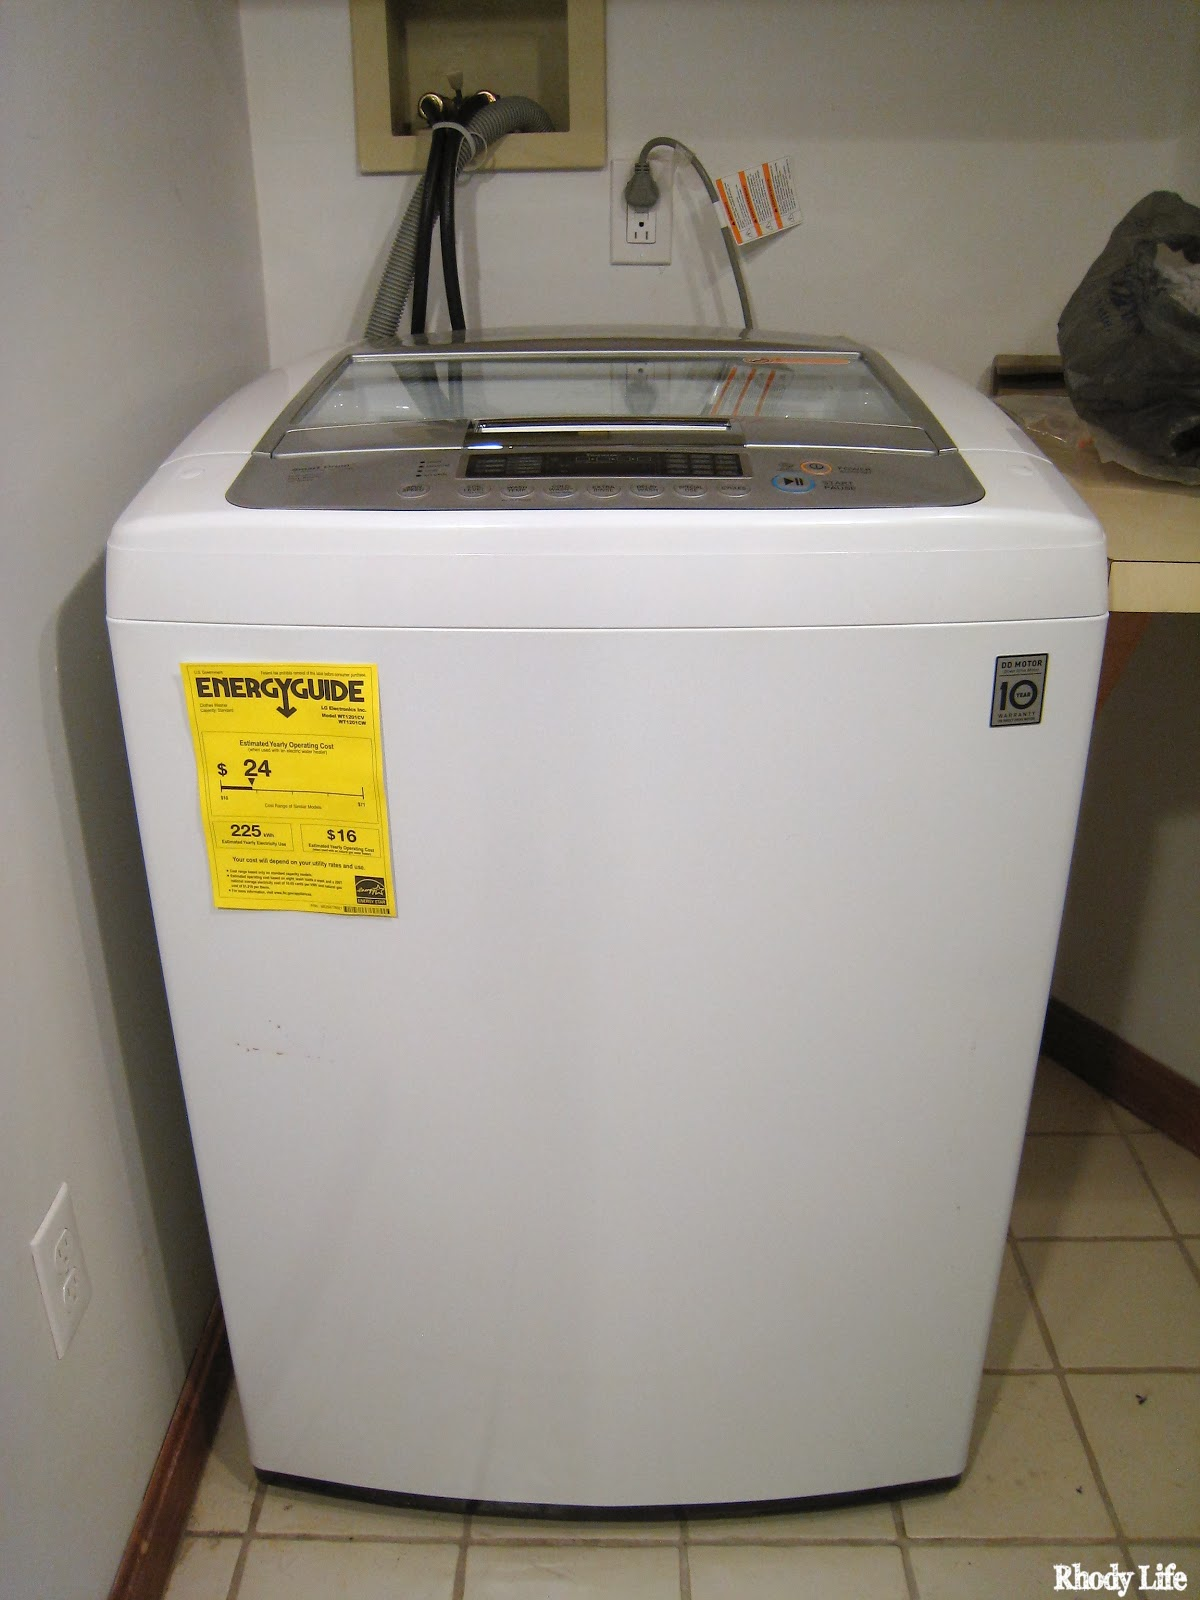 Sears lg washer and dryer - Lg Washer And Dryer From Sears